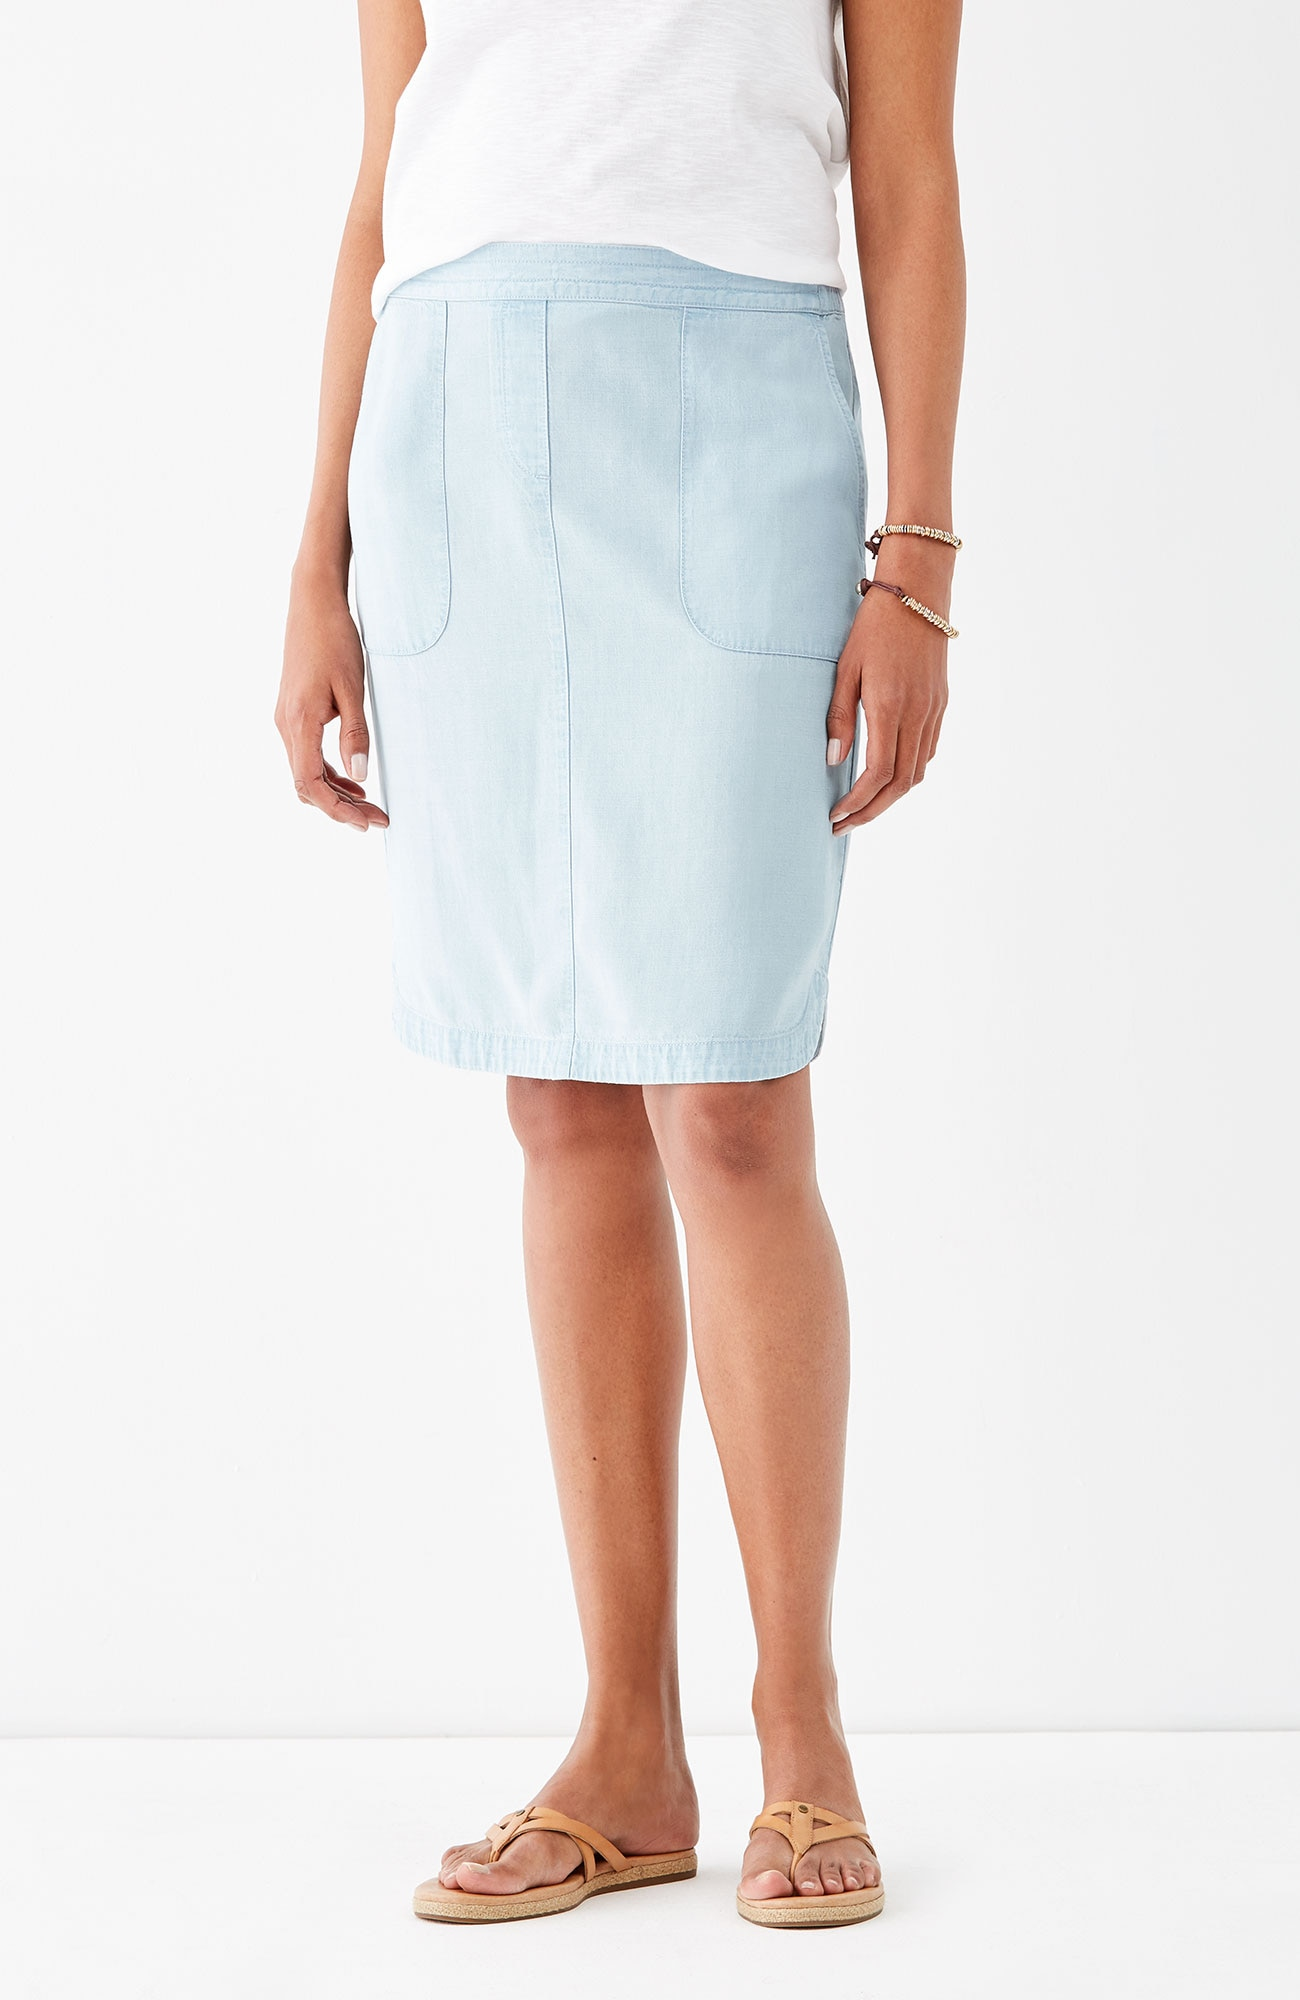 Tencel®-Soft indigo curved-hem skirt